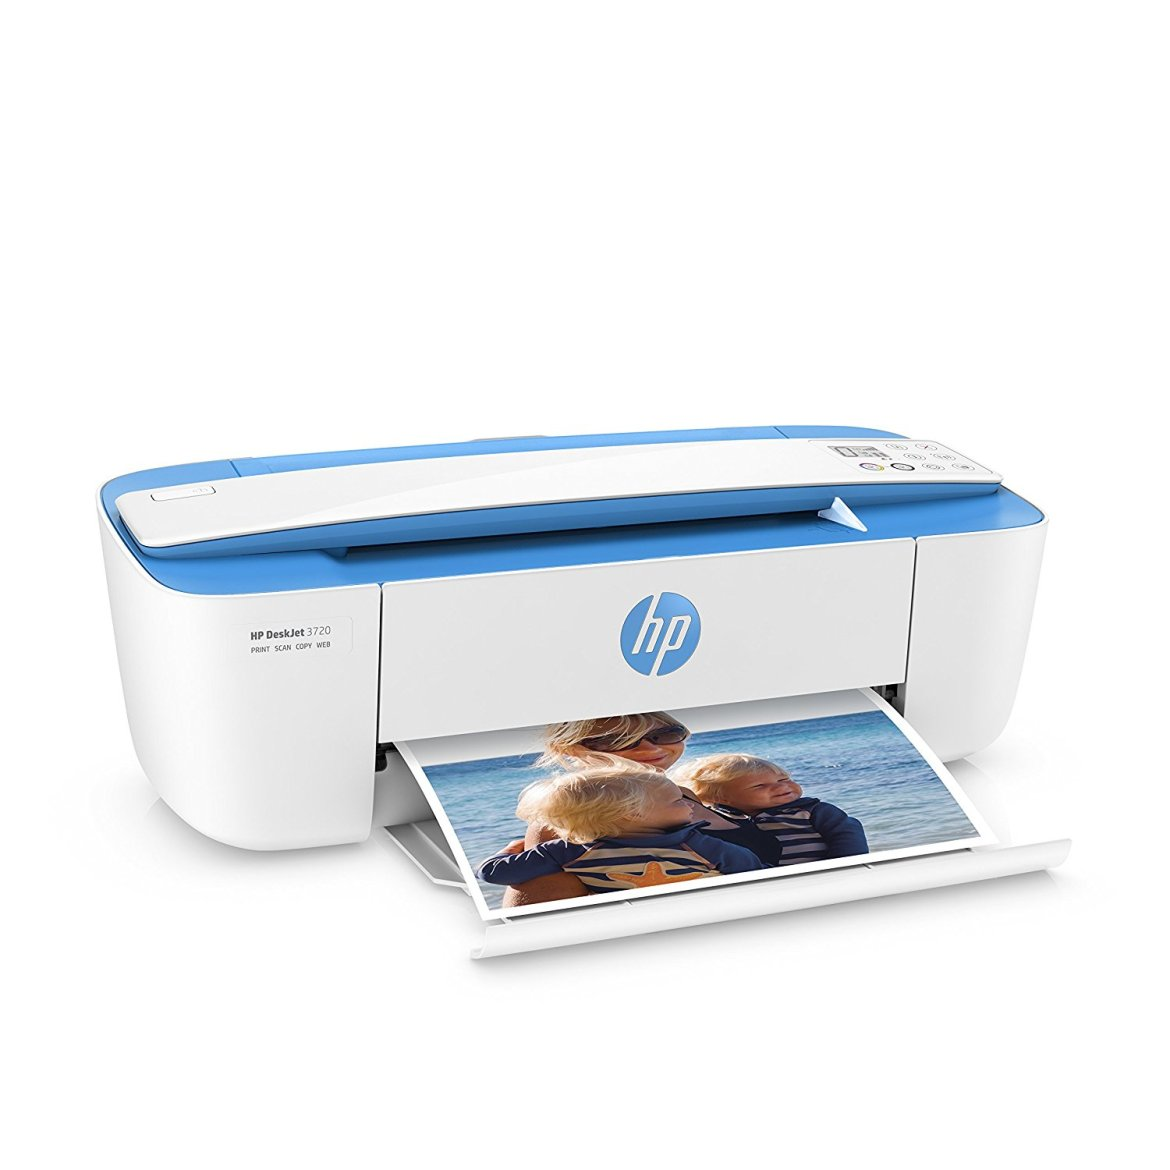 81qGA lM2aL. SL1500  - Recensione HP DeskJet All in One 3720